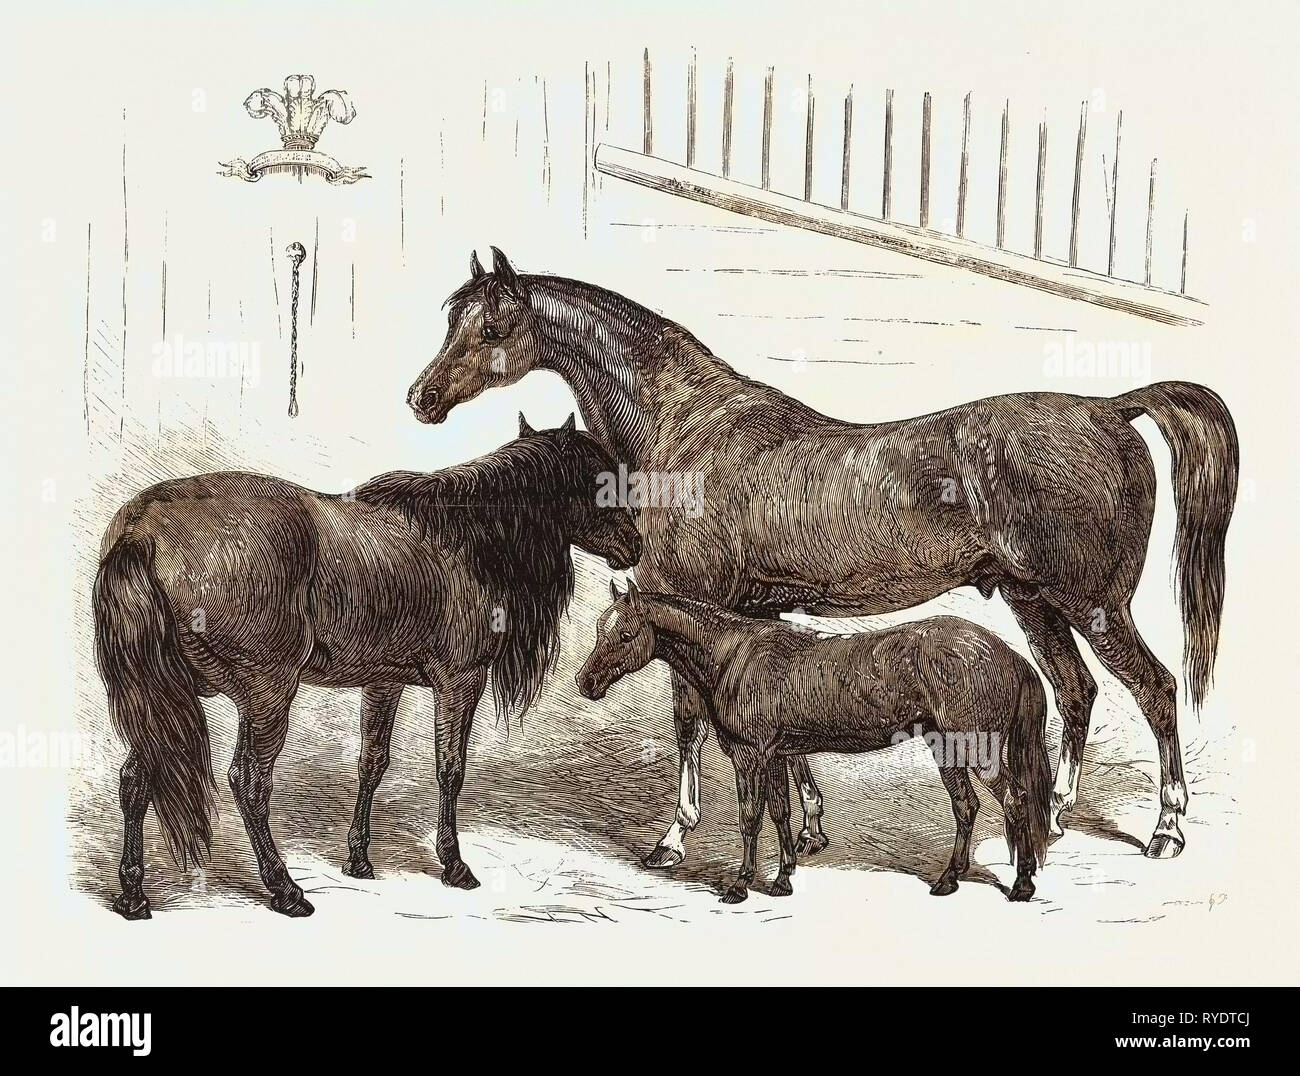 The Prince Of Wales Indian Horses At The Agricultural Hall Horse Show Cabulee Nawab Hussar Engraving 1876 Uk Britain British Europe United Kingdom Great Britain European Stock Photo Alamy